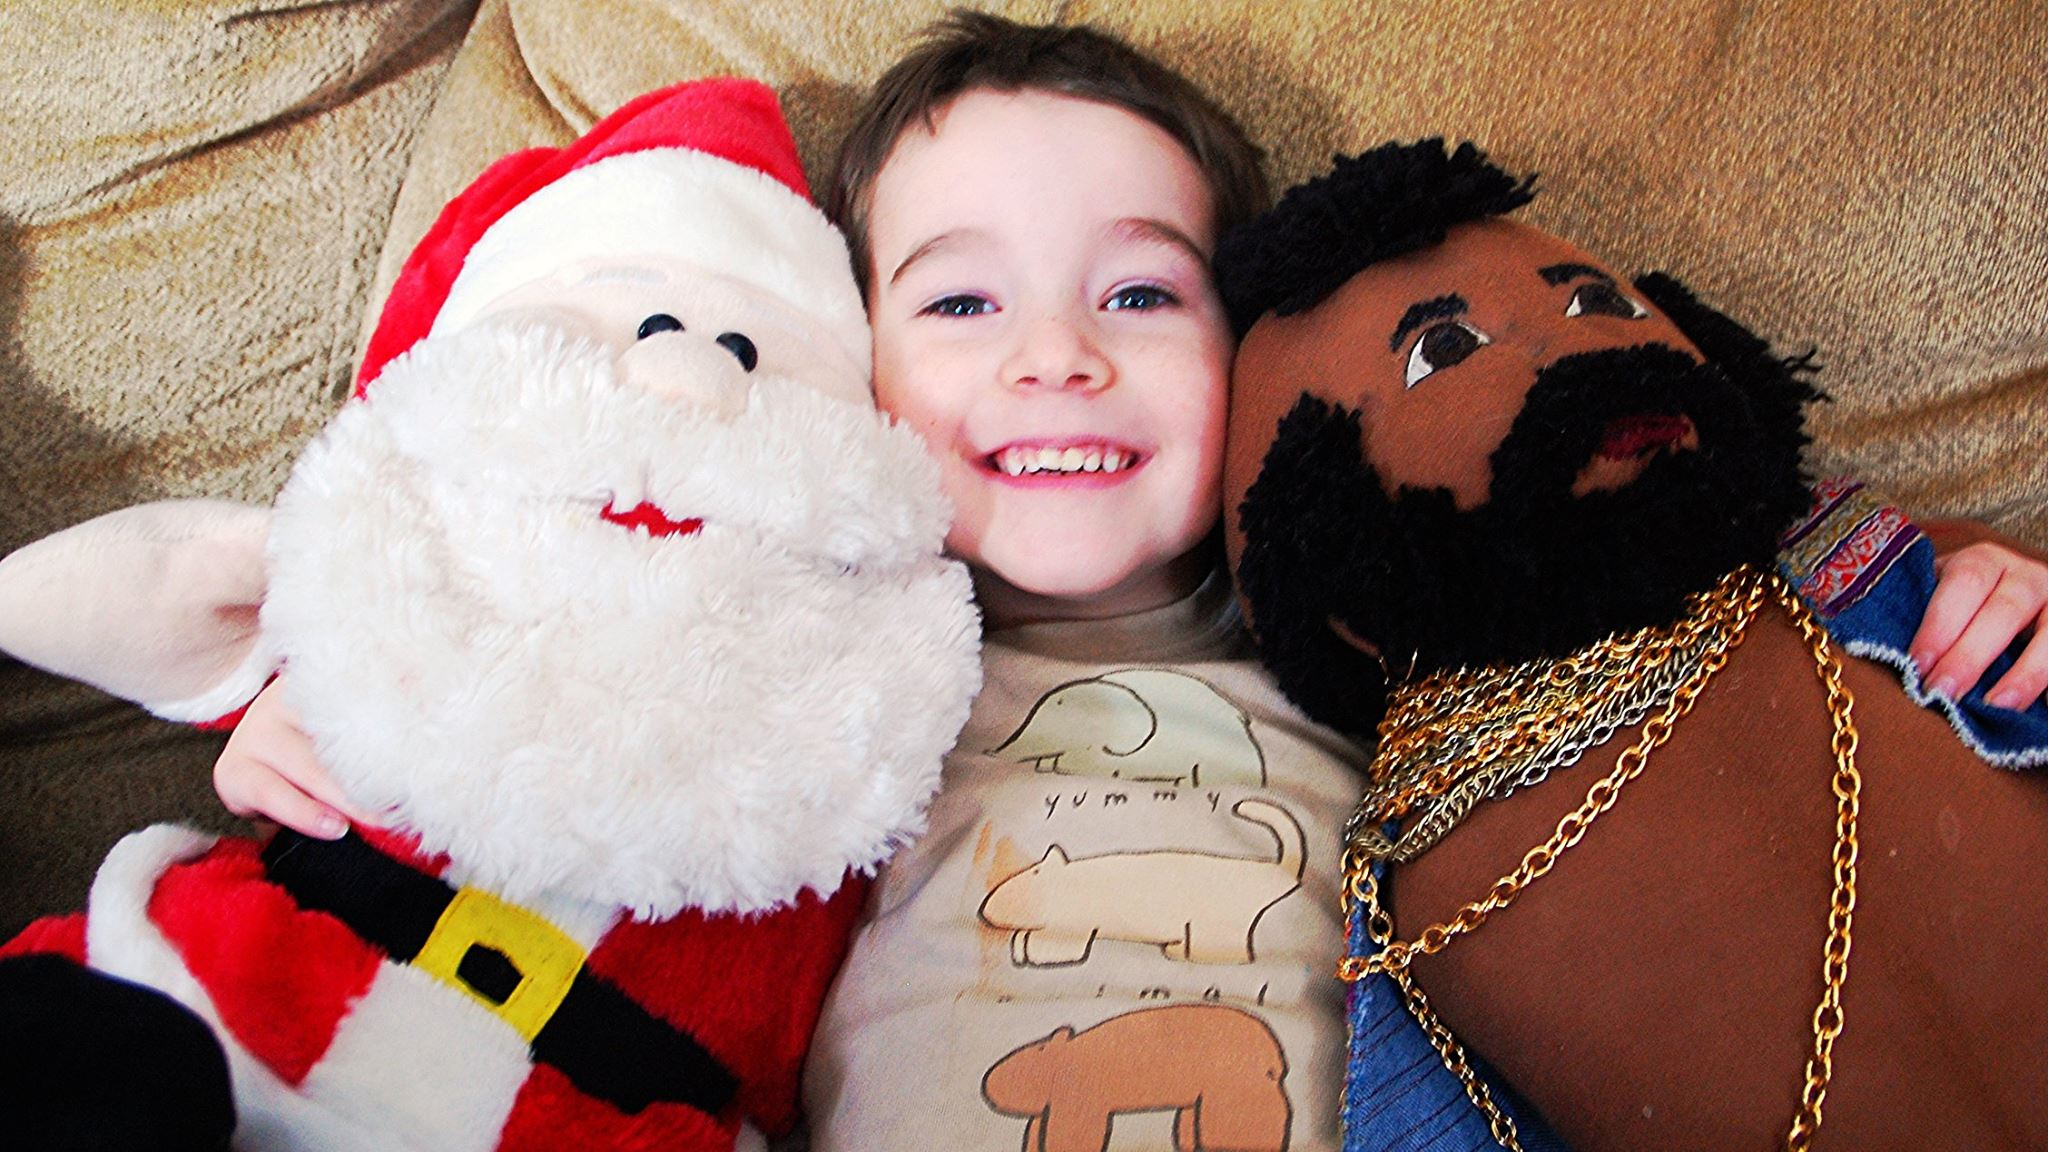 Three year old with Santa and Mr. T